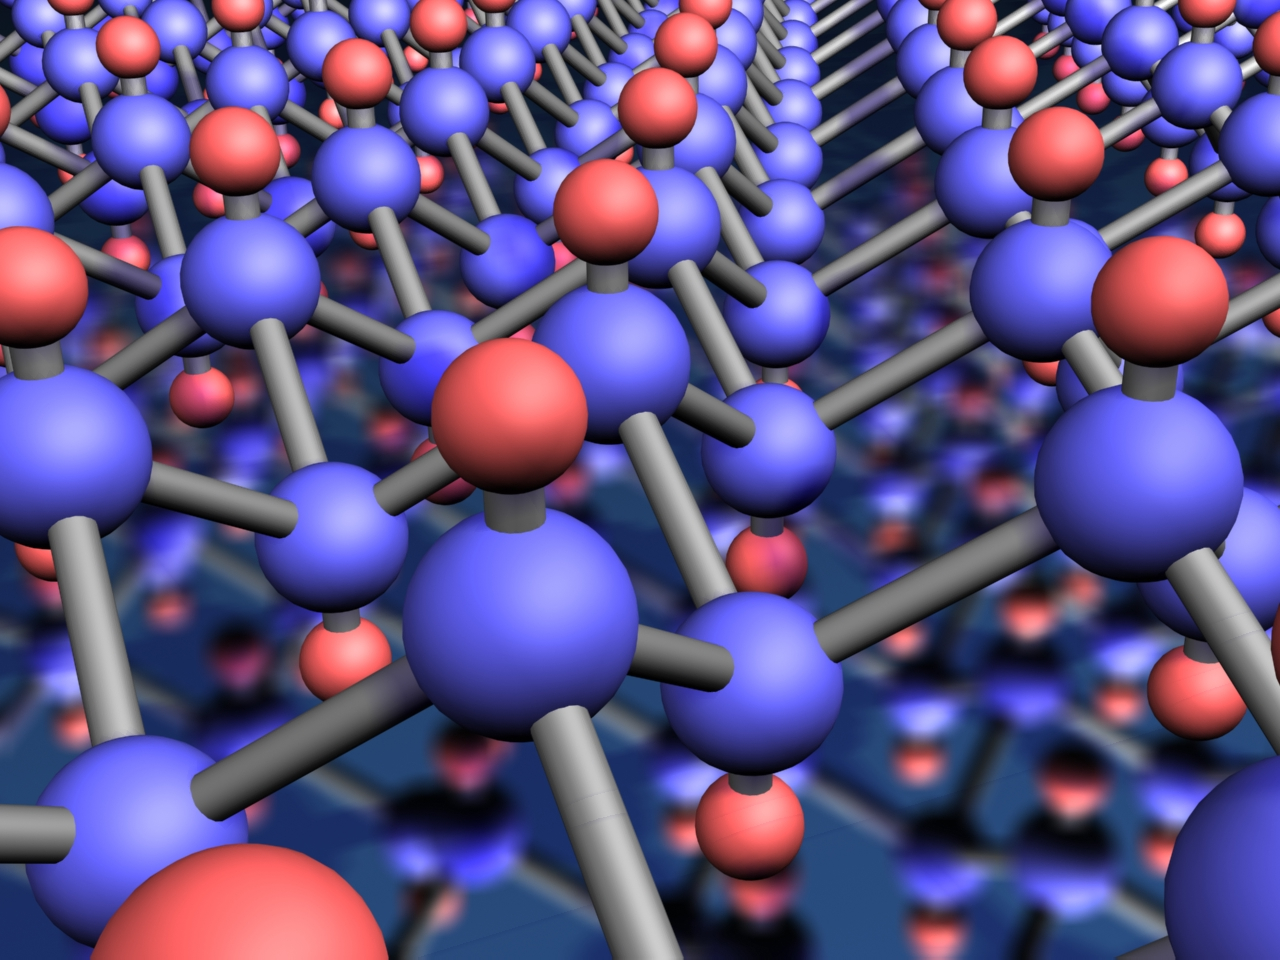 Scientists discover ground-breaking material: Graphane